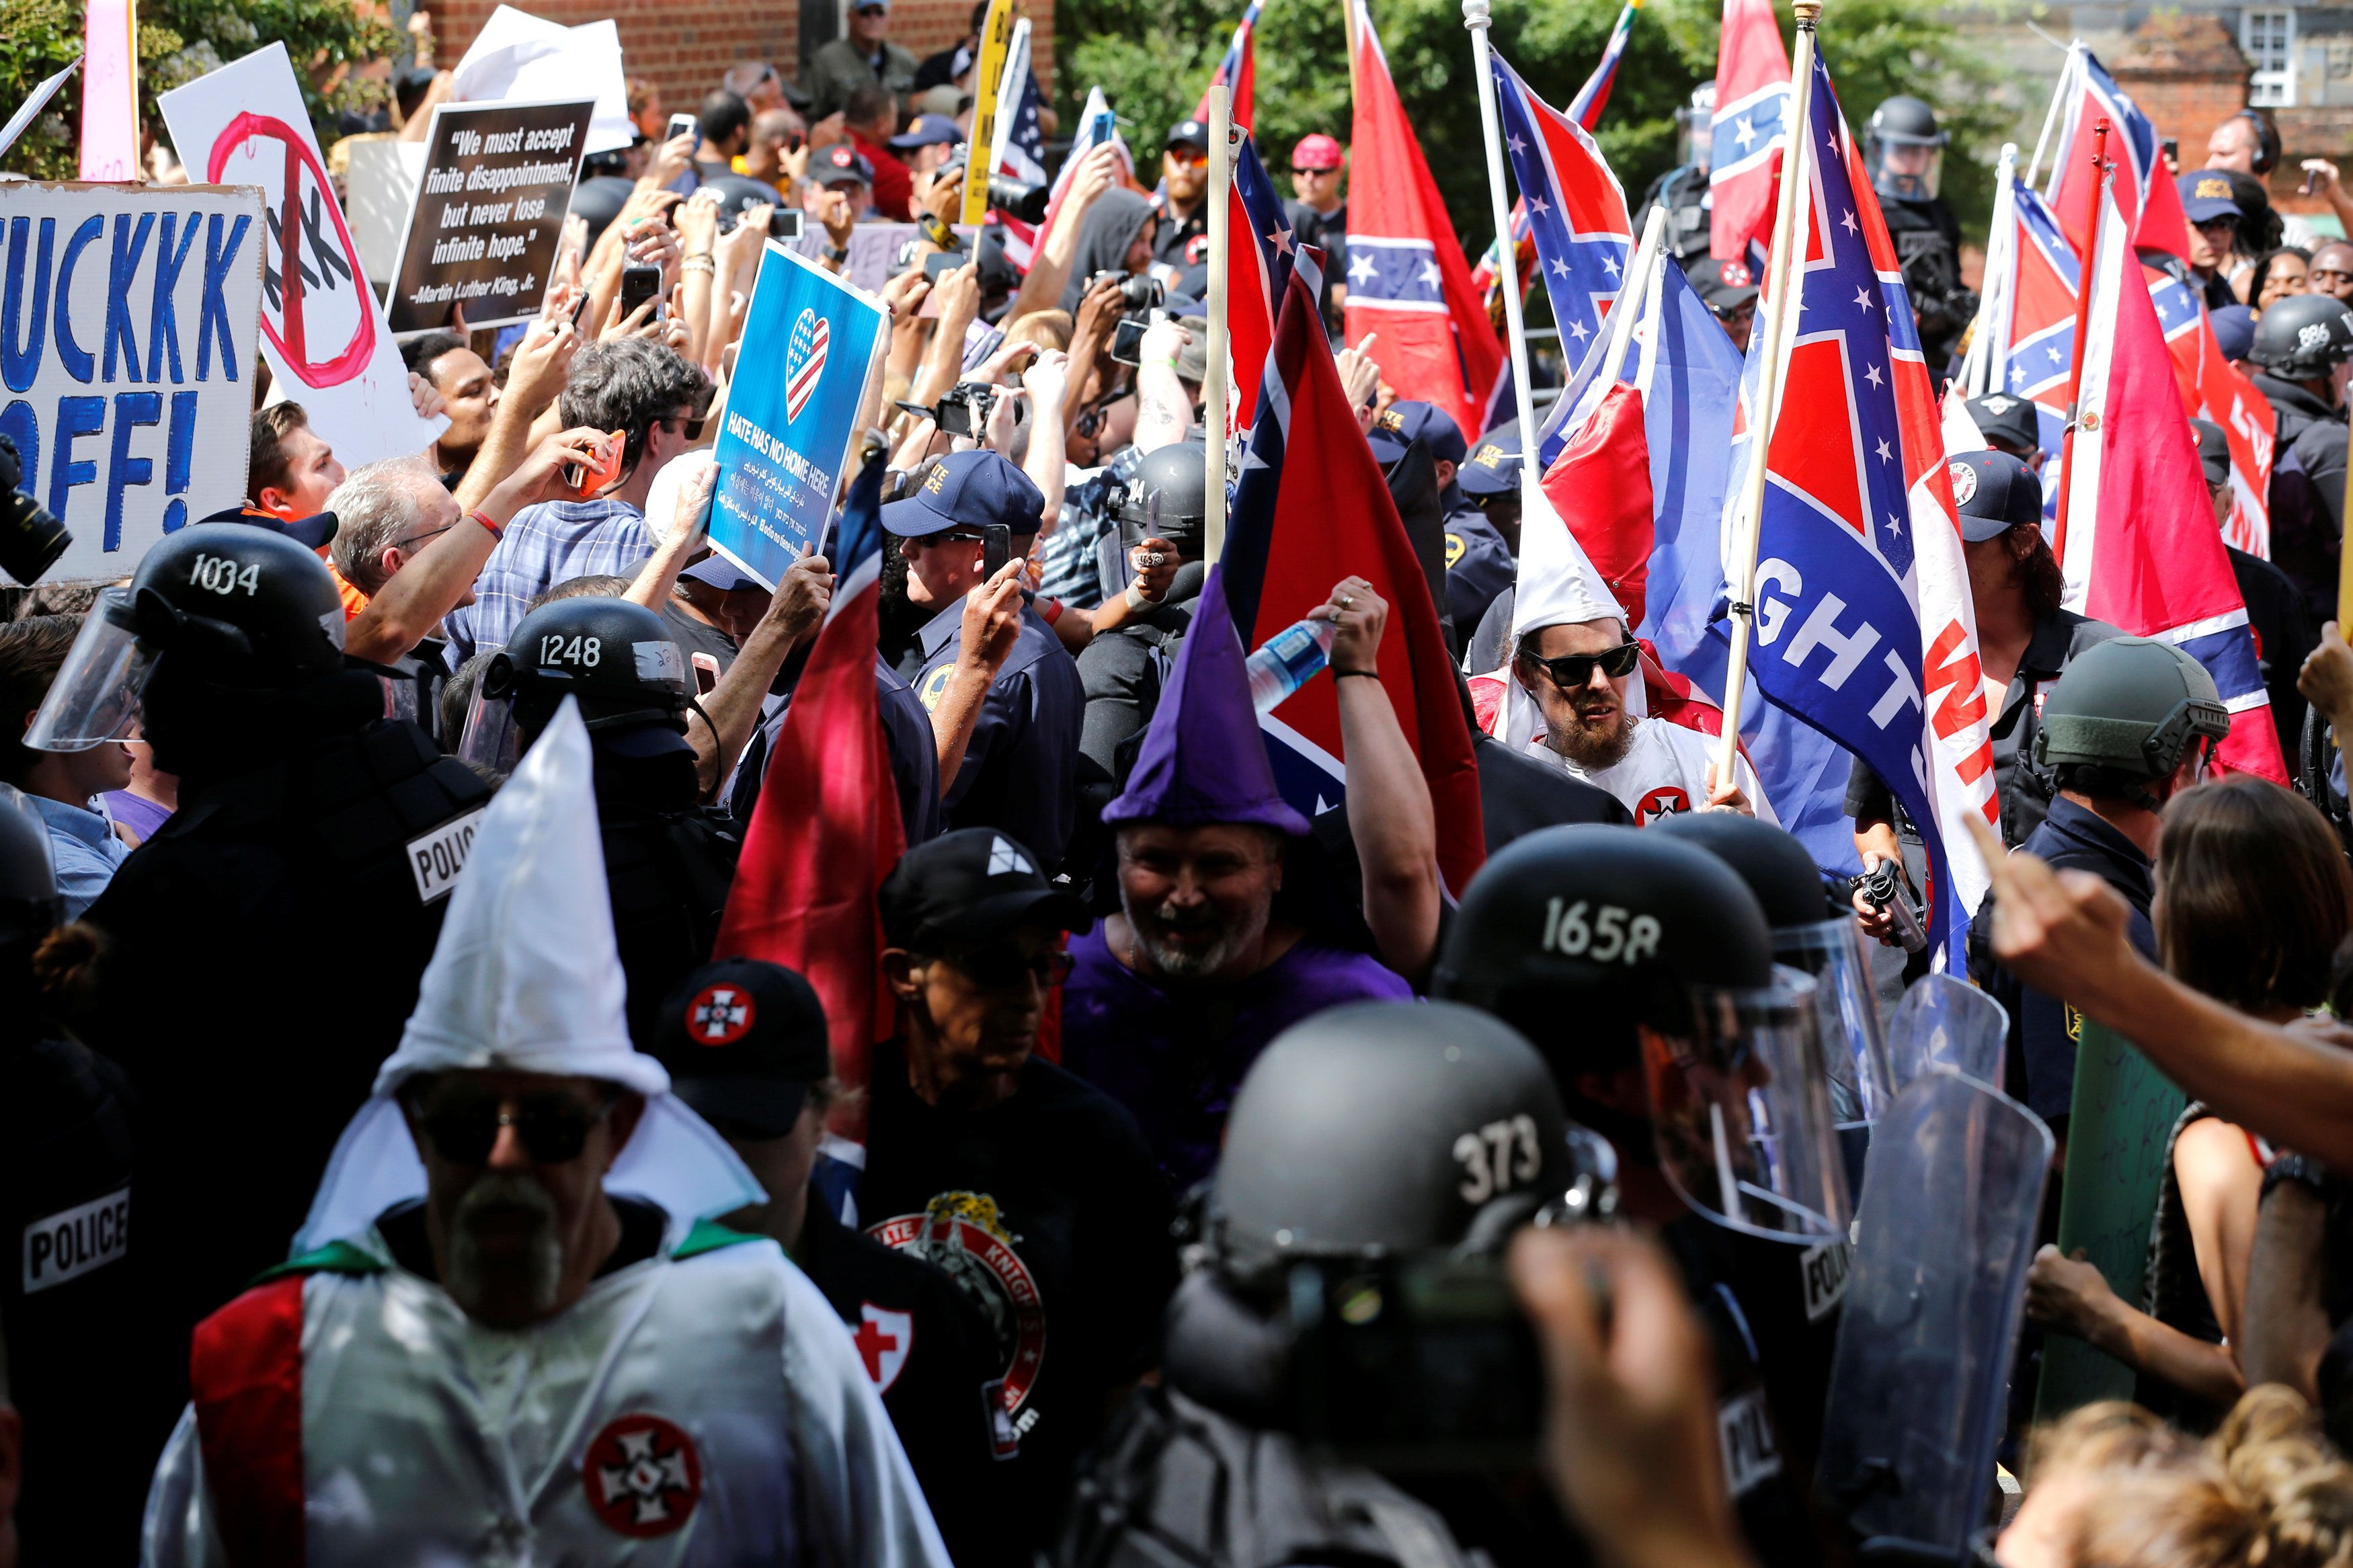 Riot police protect members of the Ku Klux Klan from counter-protesters as they arrive to rally in support of Confederate mon